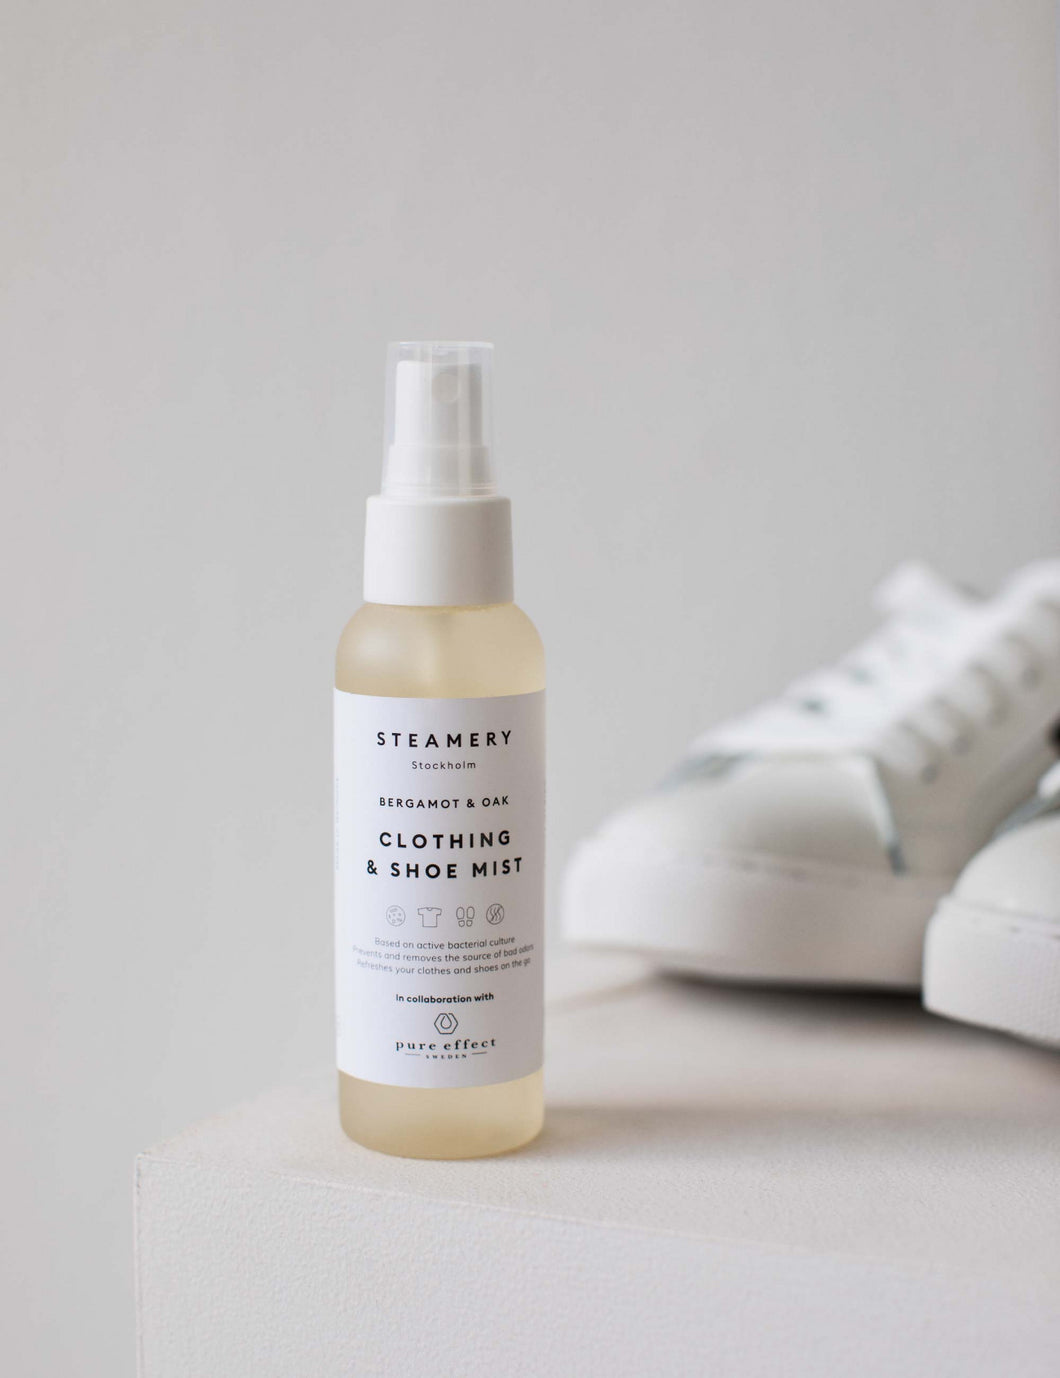 Steamery - Clothing & Shoe Mist